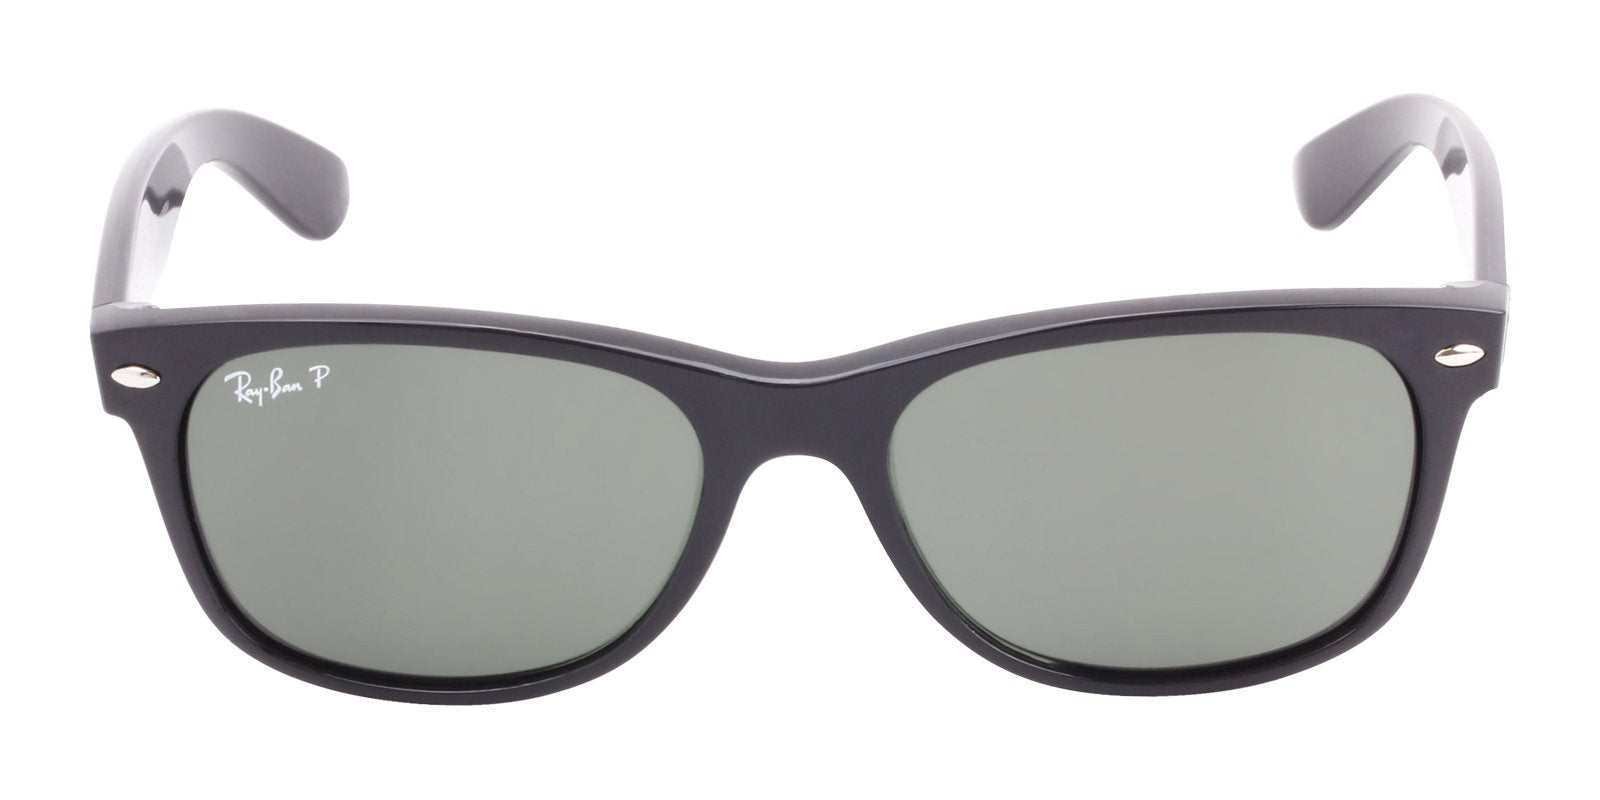 Ray Ban - New Wayfarer Black Wayfarer Unisex Sunglasses - 55mm-Sunglasses-Designer Eyes